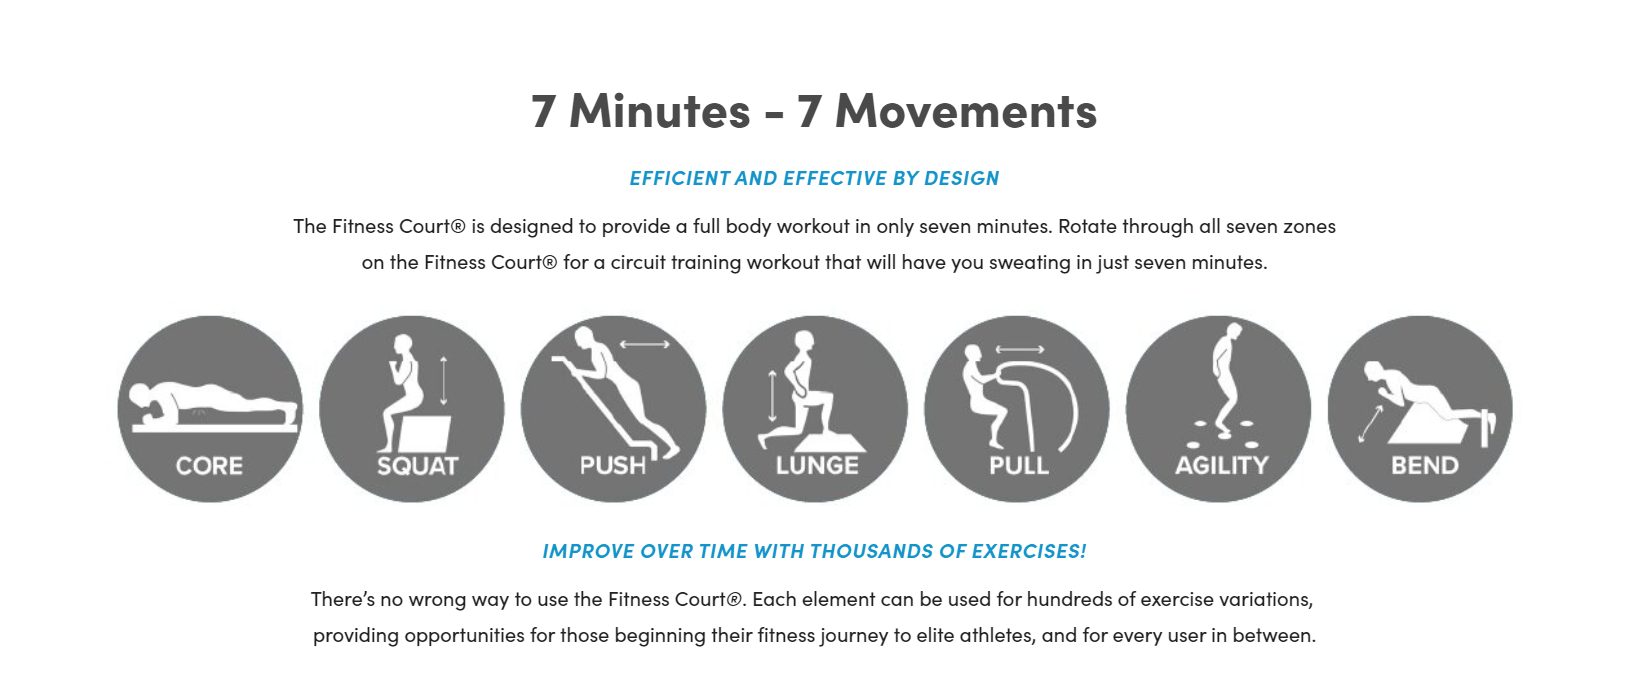 7 MINUTES 7 MOVEMENTS IT ONLY TAKES 7 MINUTES TO CHANGE YOUR HEALTH